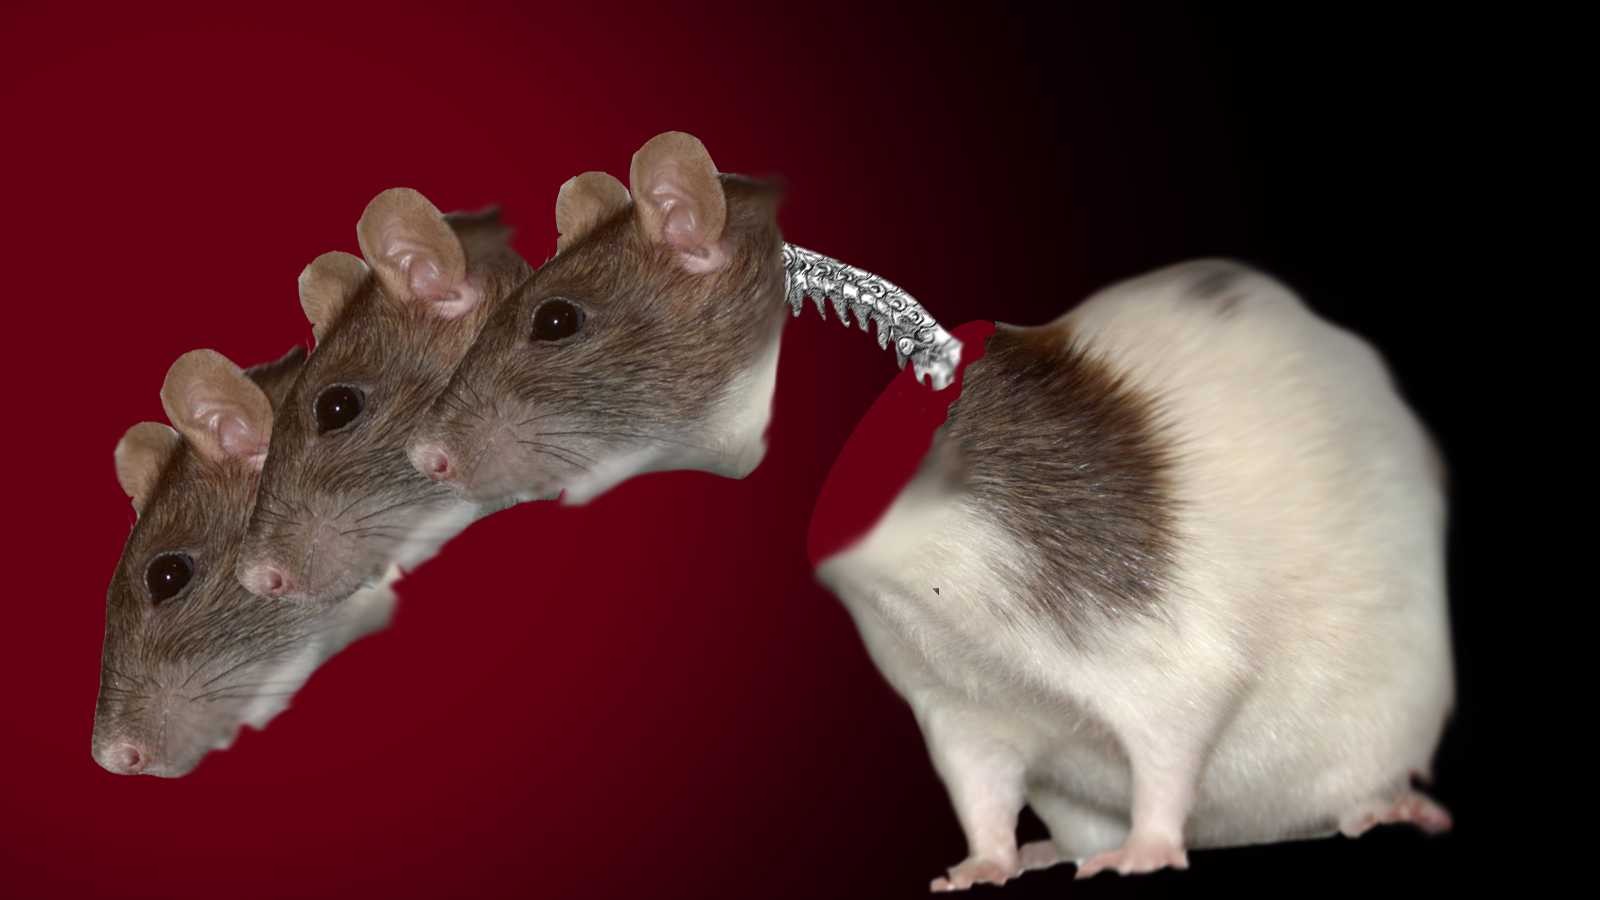 Head Transplant Scientists Re-Attach Rat Spines, Others Not Convinced